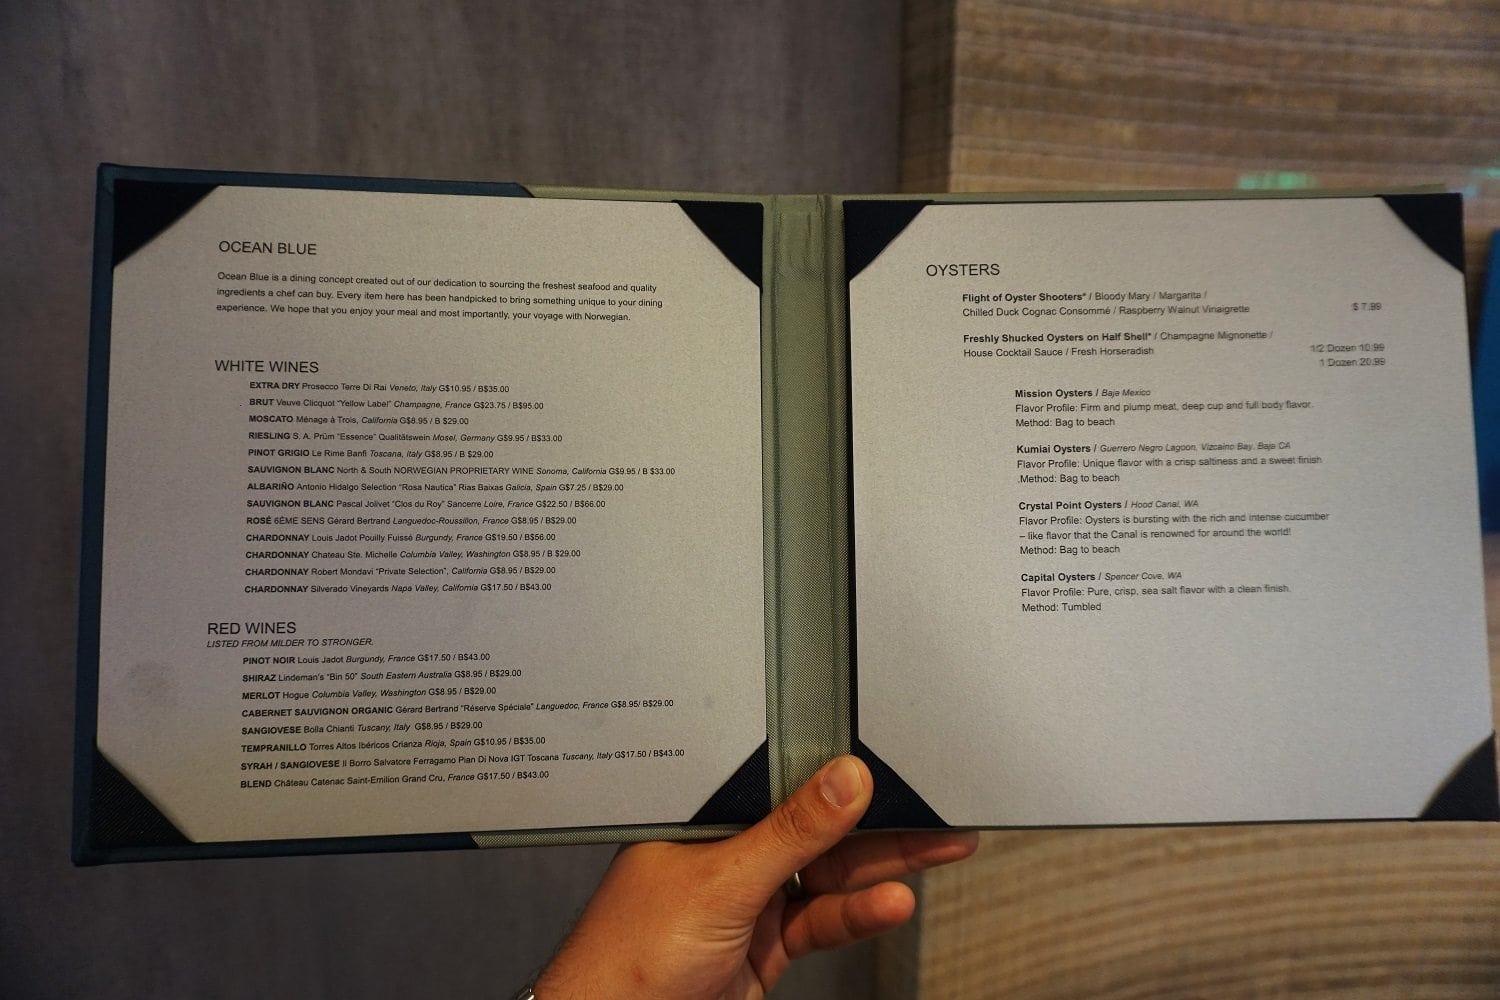 La Cucina Menu Ncl Bliss Norwegian Bliss Restaurant Menus And Guide